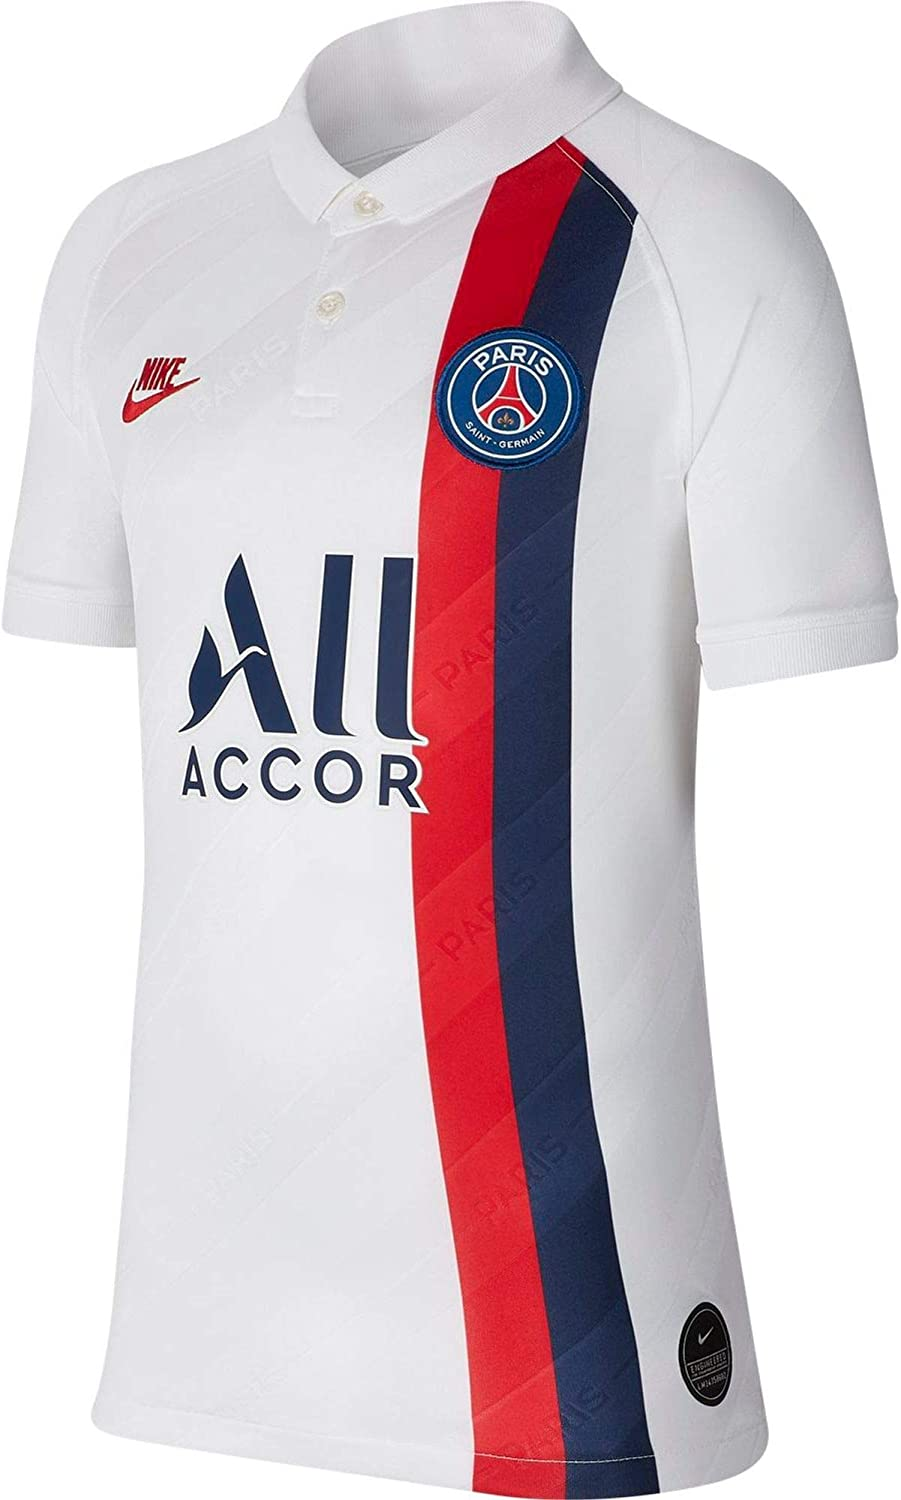 Amazon Com Nike 2019 2020 Psg Third Football Soccer T Shirt Jersey White Kids Sports Outdoors